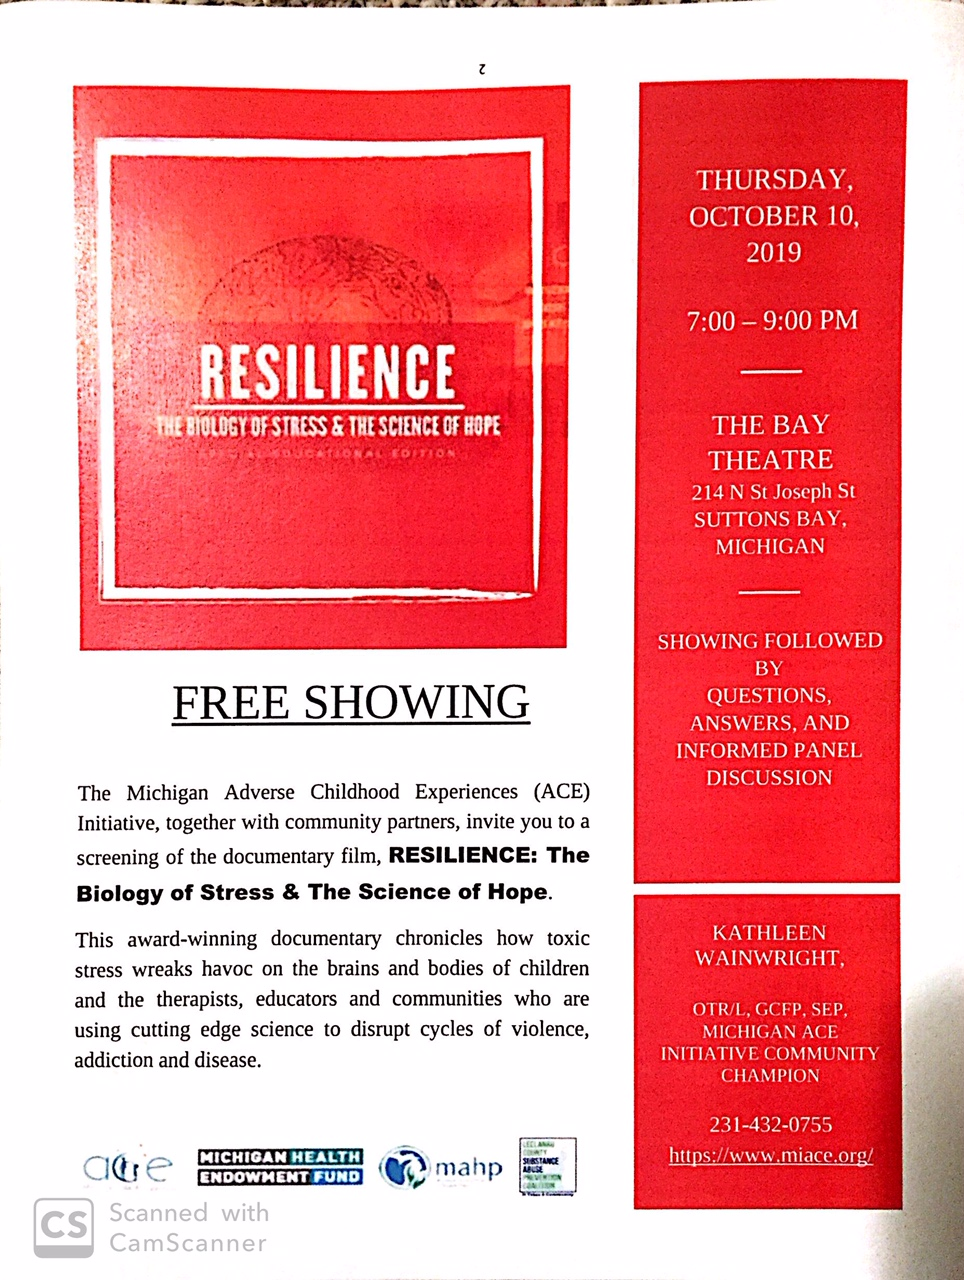 Resilience the documentary